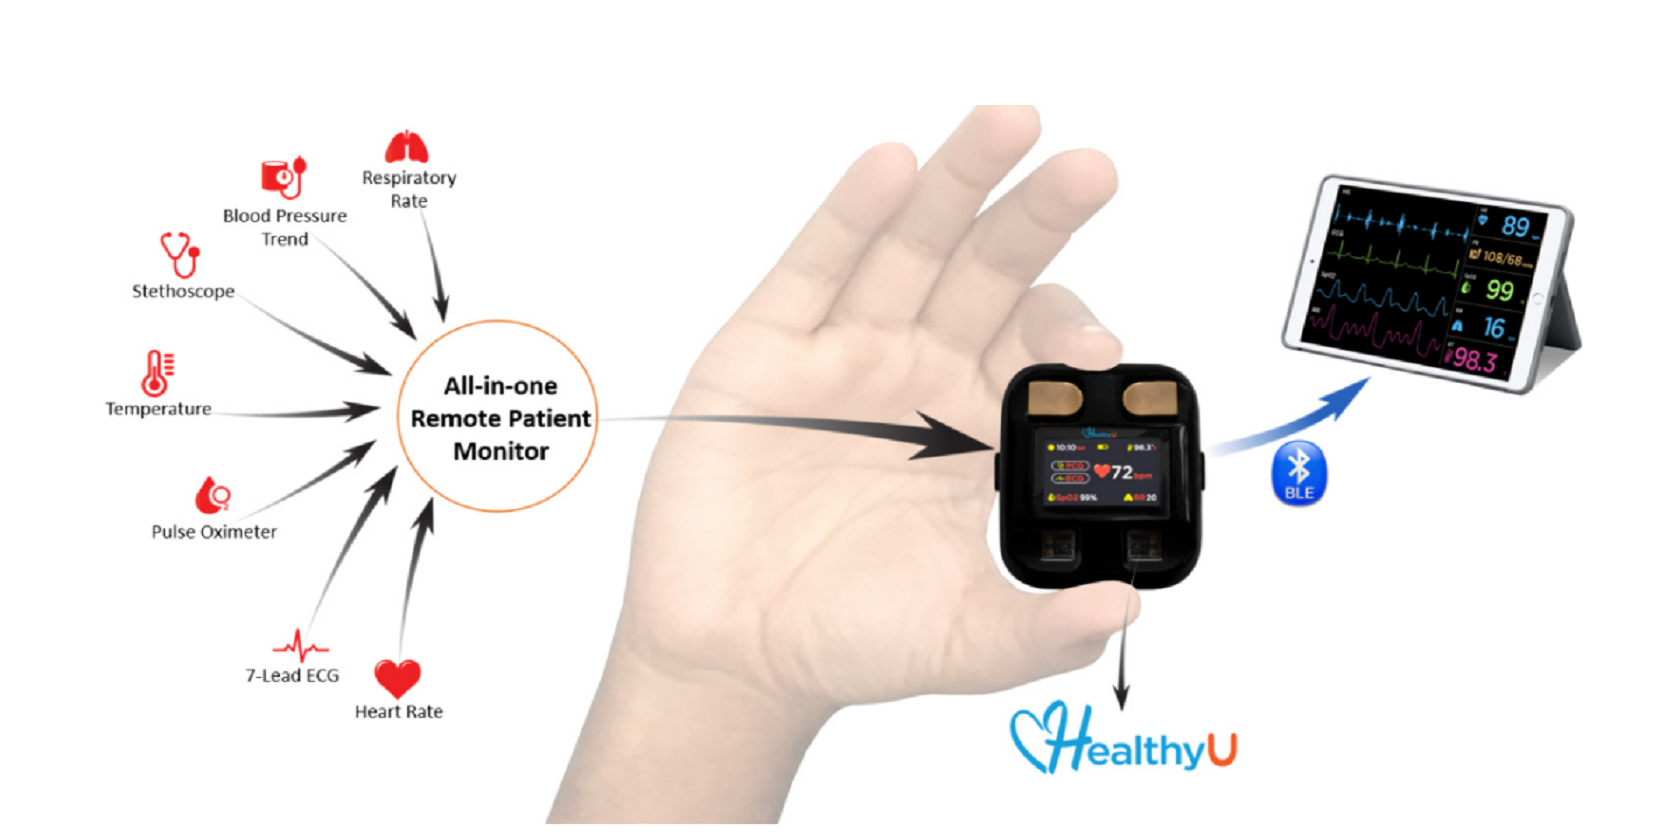 This Is the First Health Tracker to Monitor 7 Different Biometrics